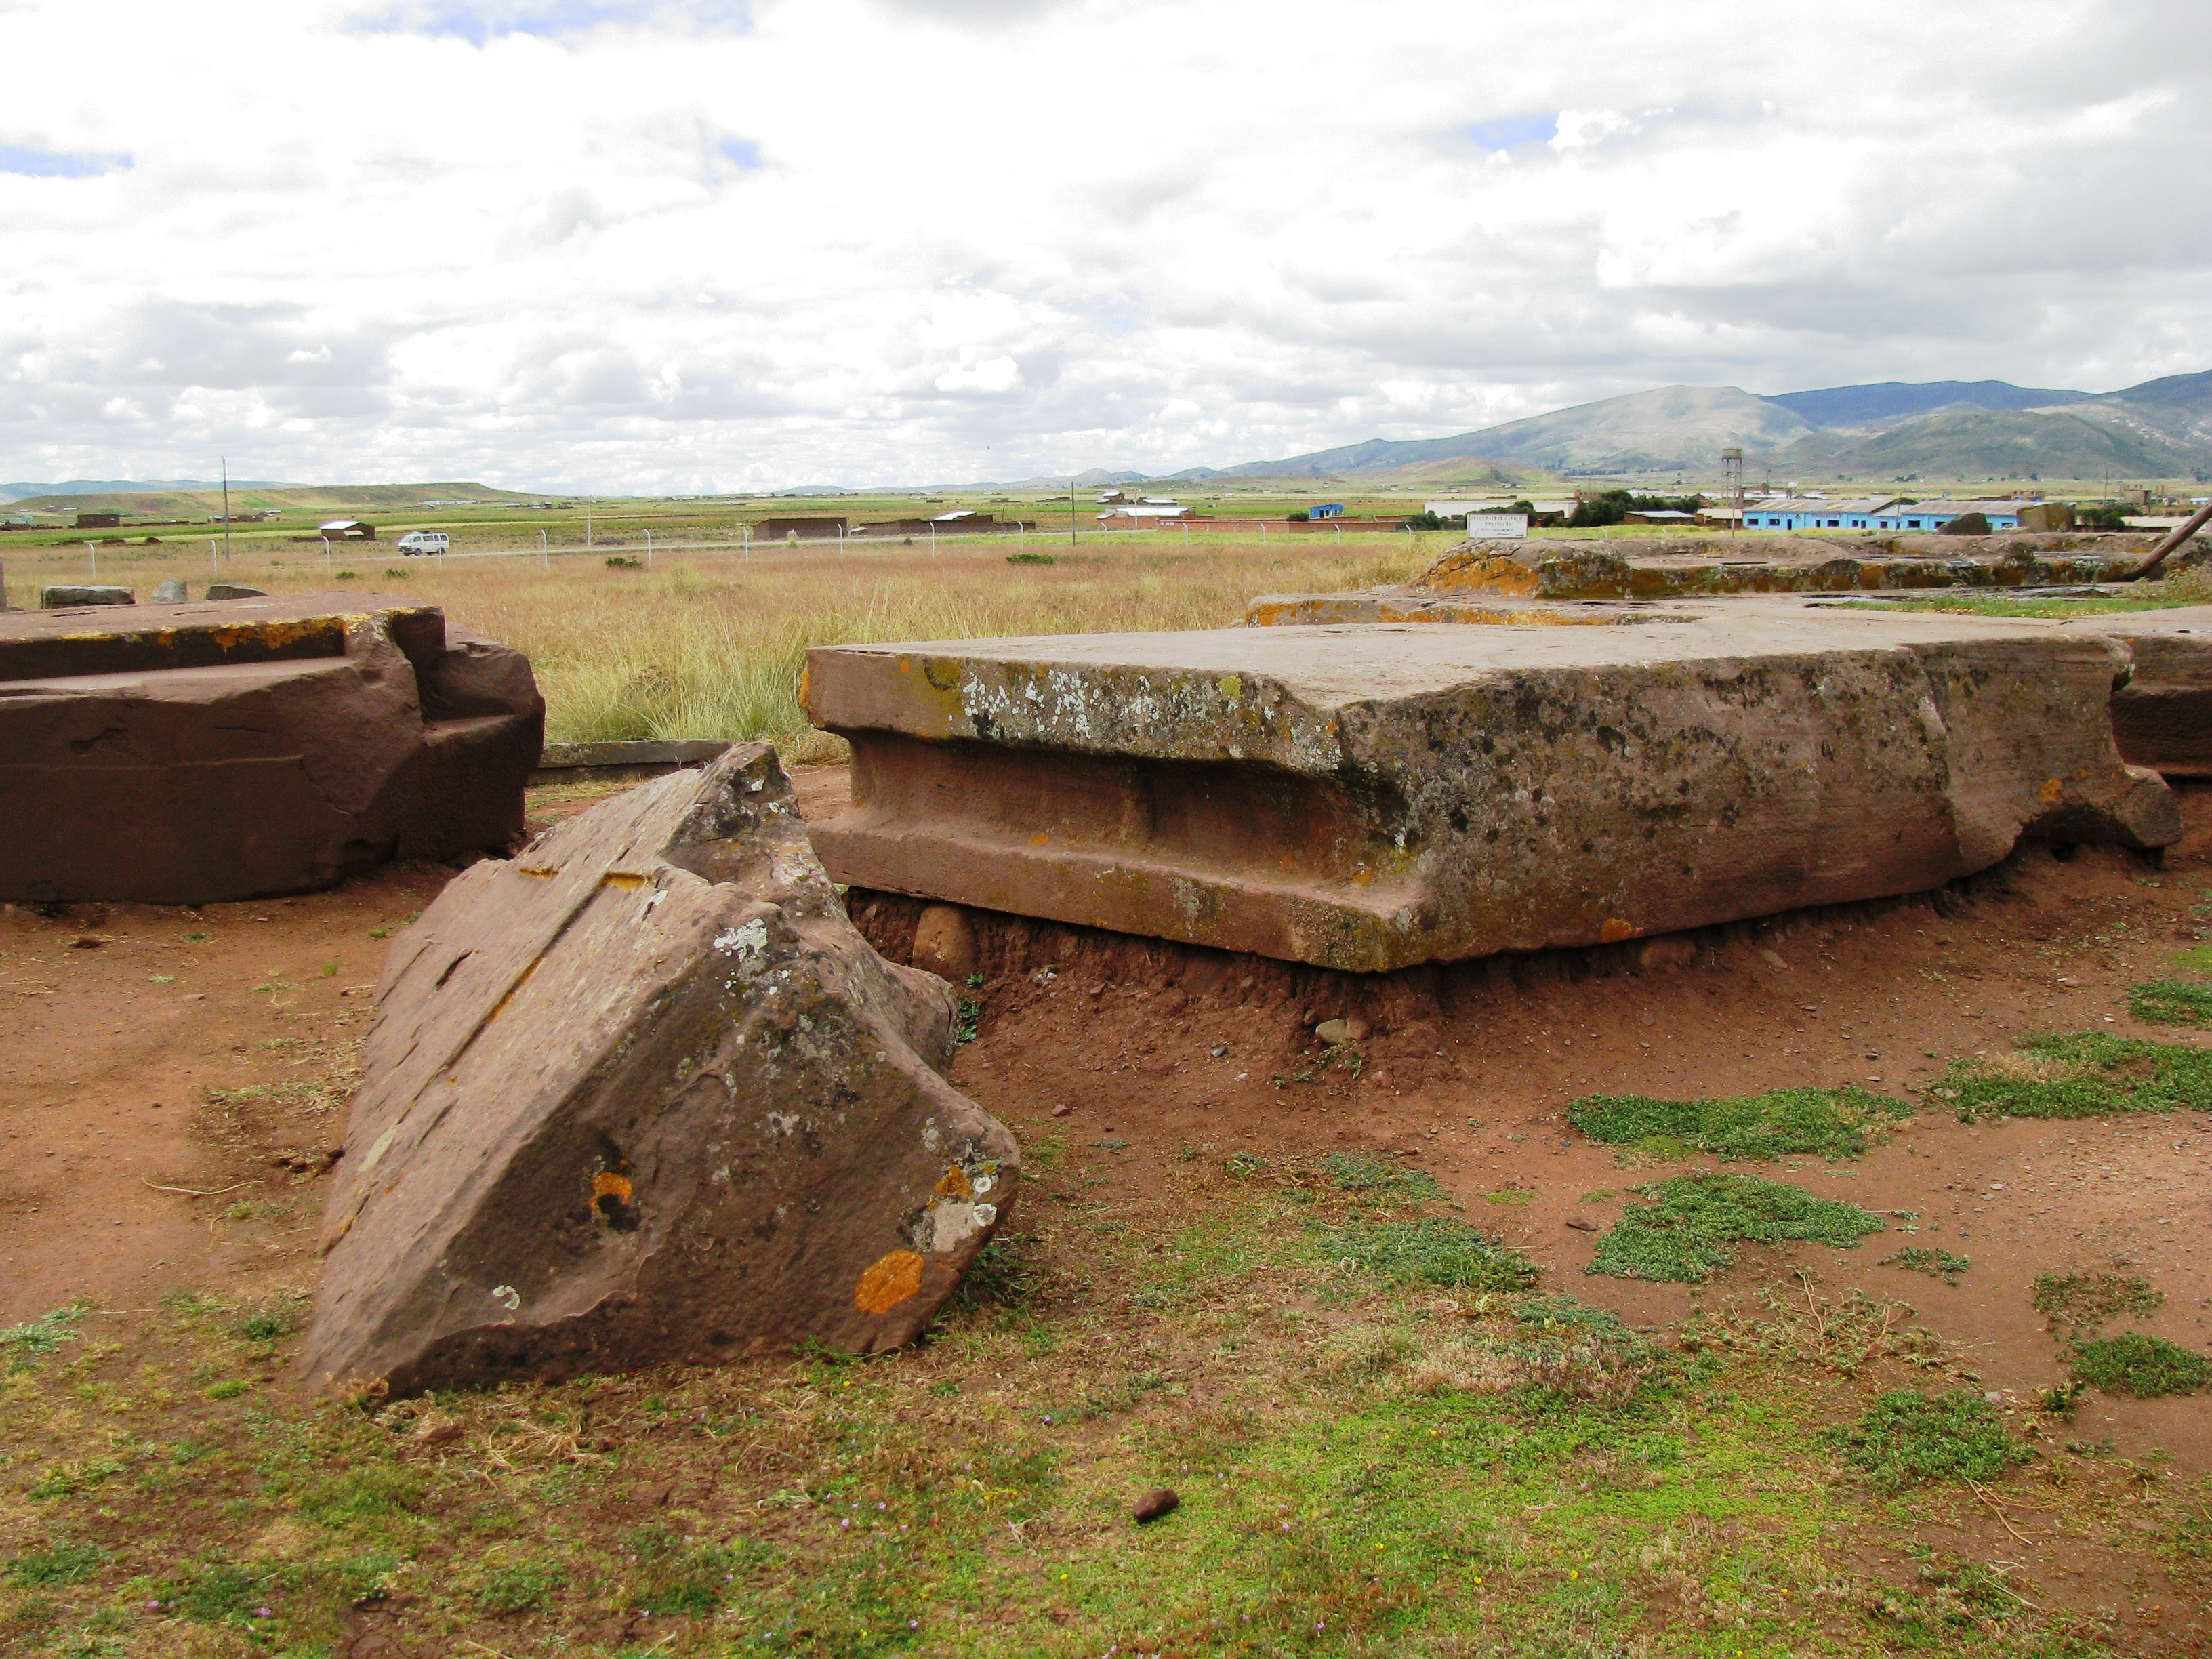 Ancient Devistation - Destroyed city of Pumapunku